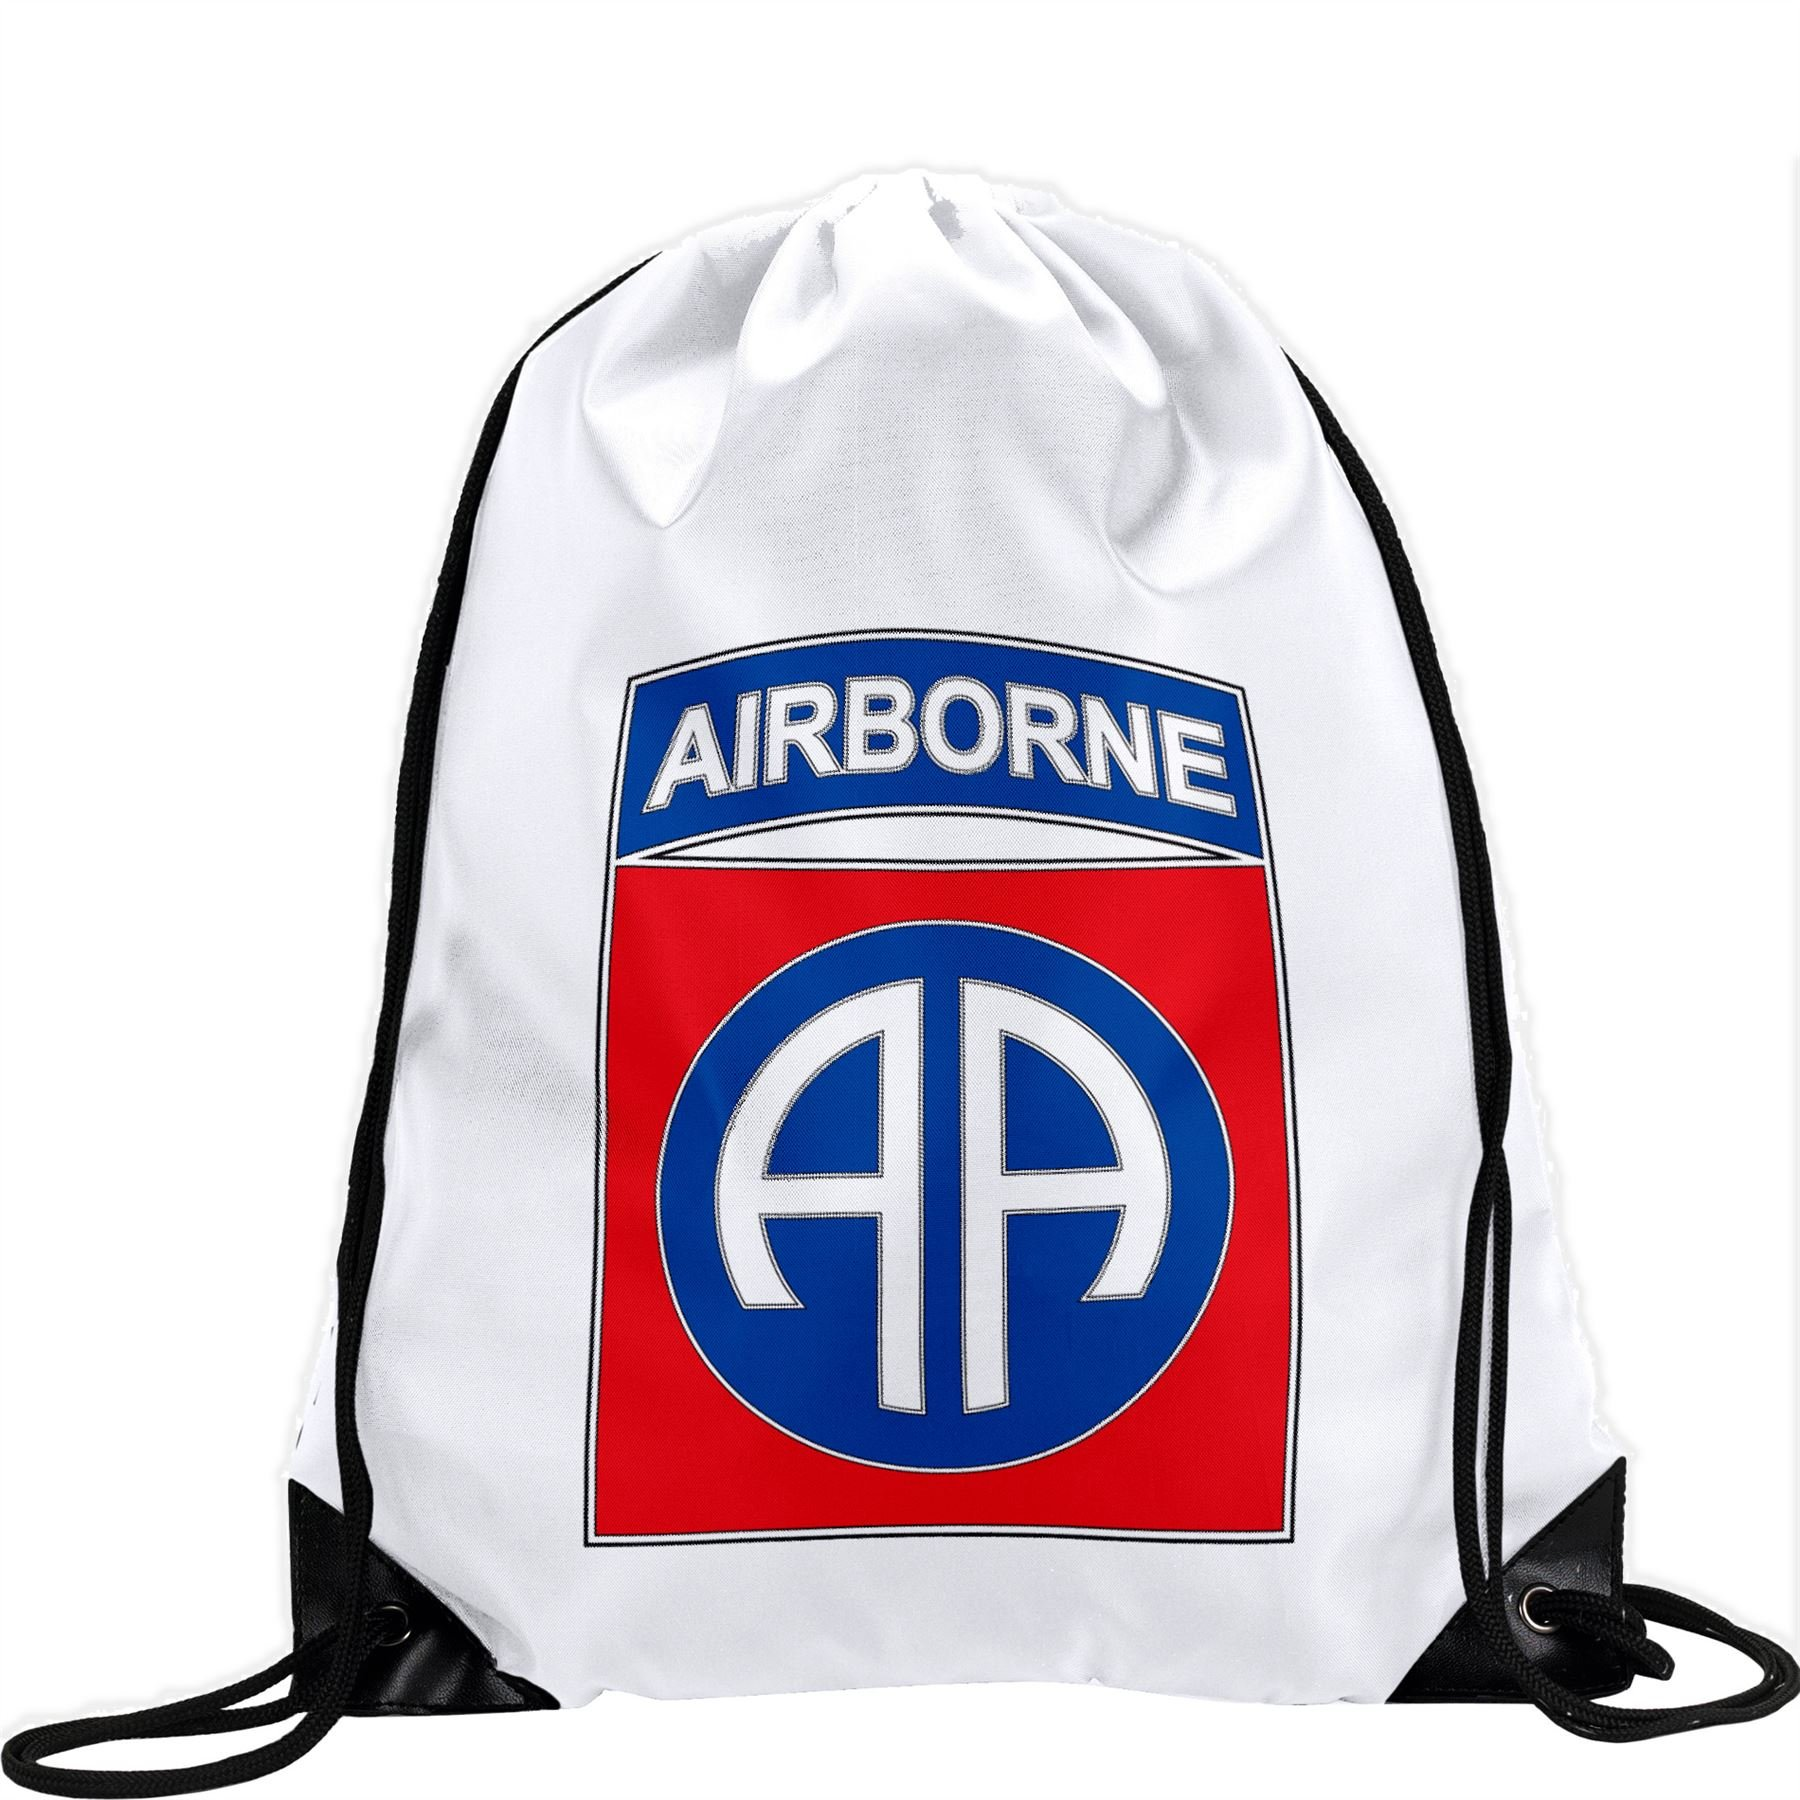 Large Drawstring Bag with US Army 82nd Airborne Division, combat service ID badge - Long lasting vibrant image